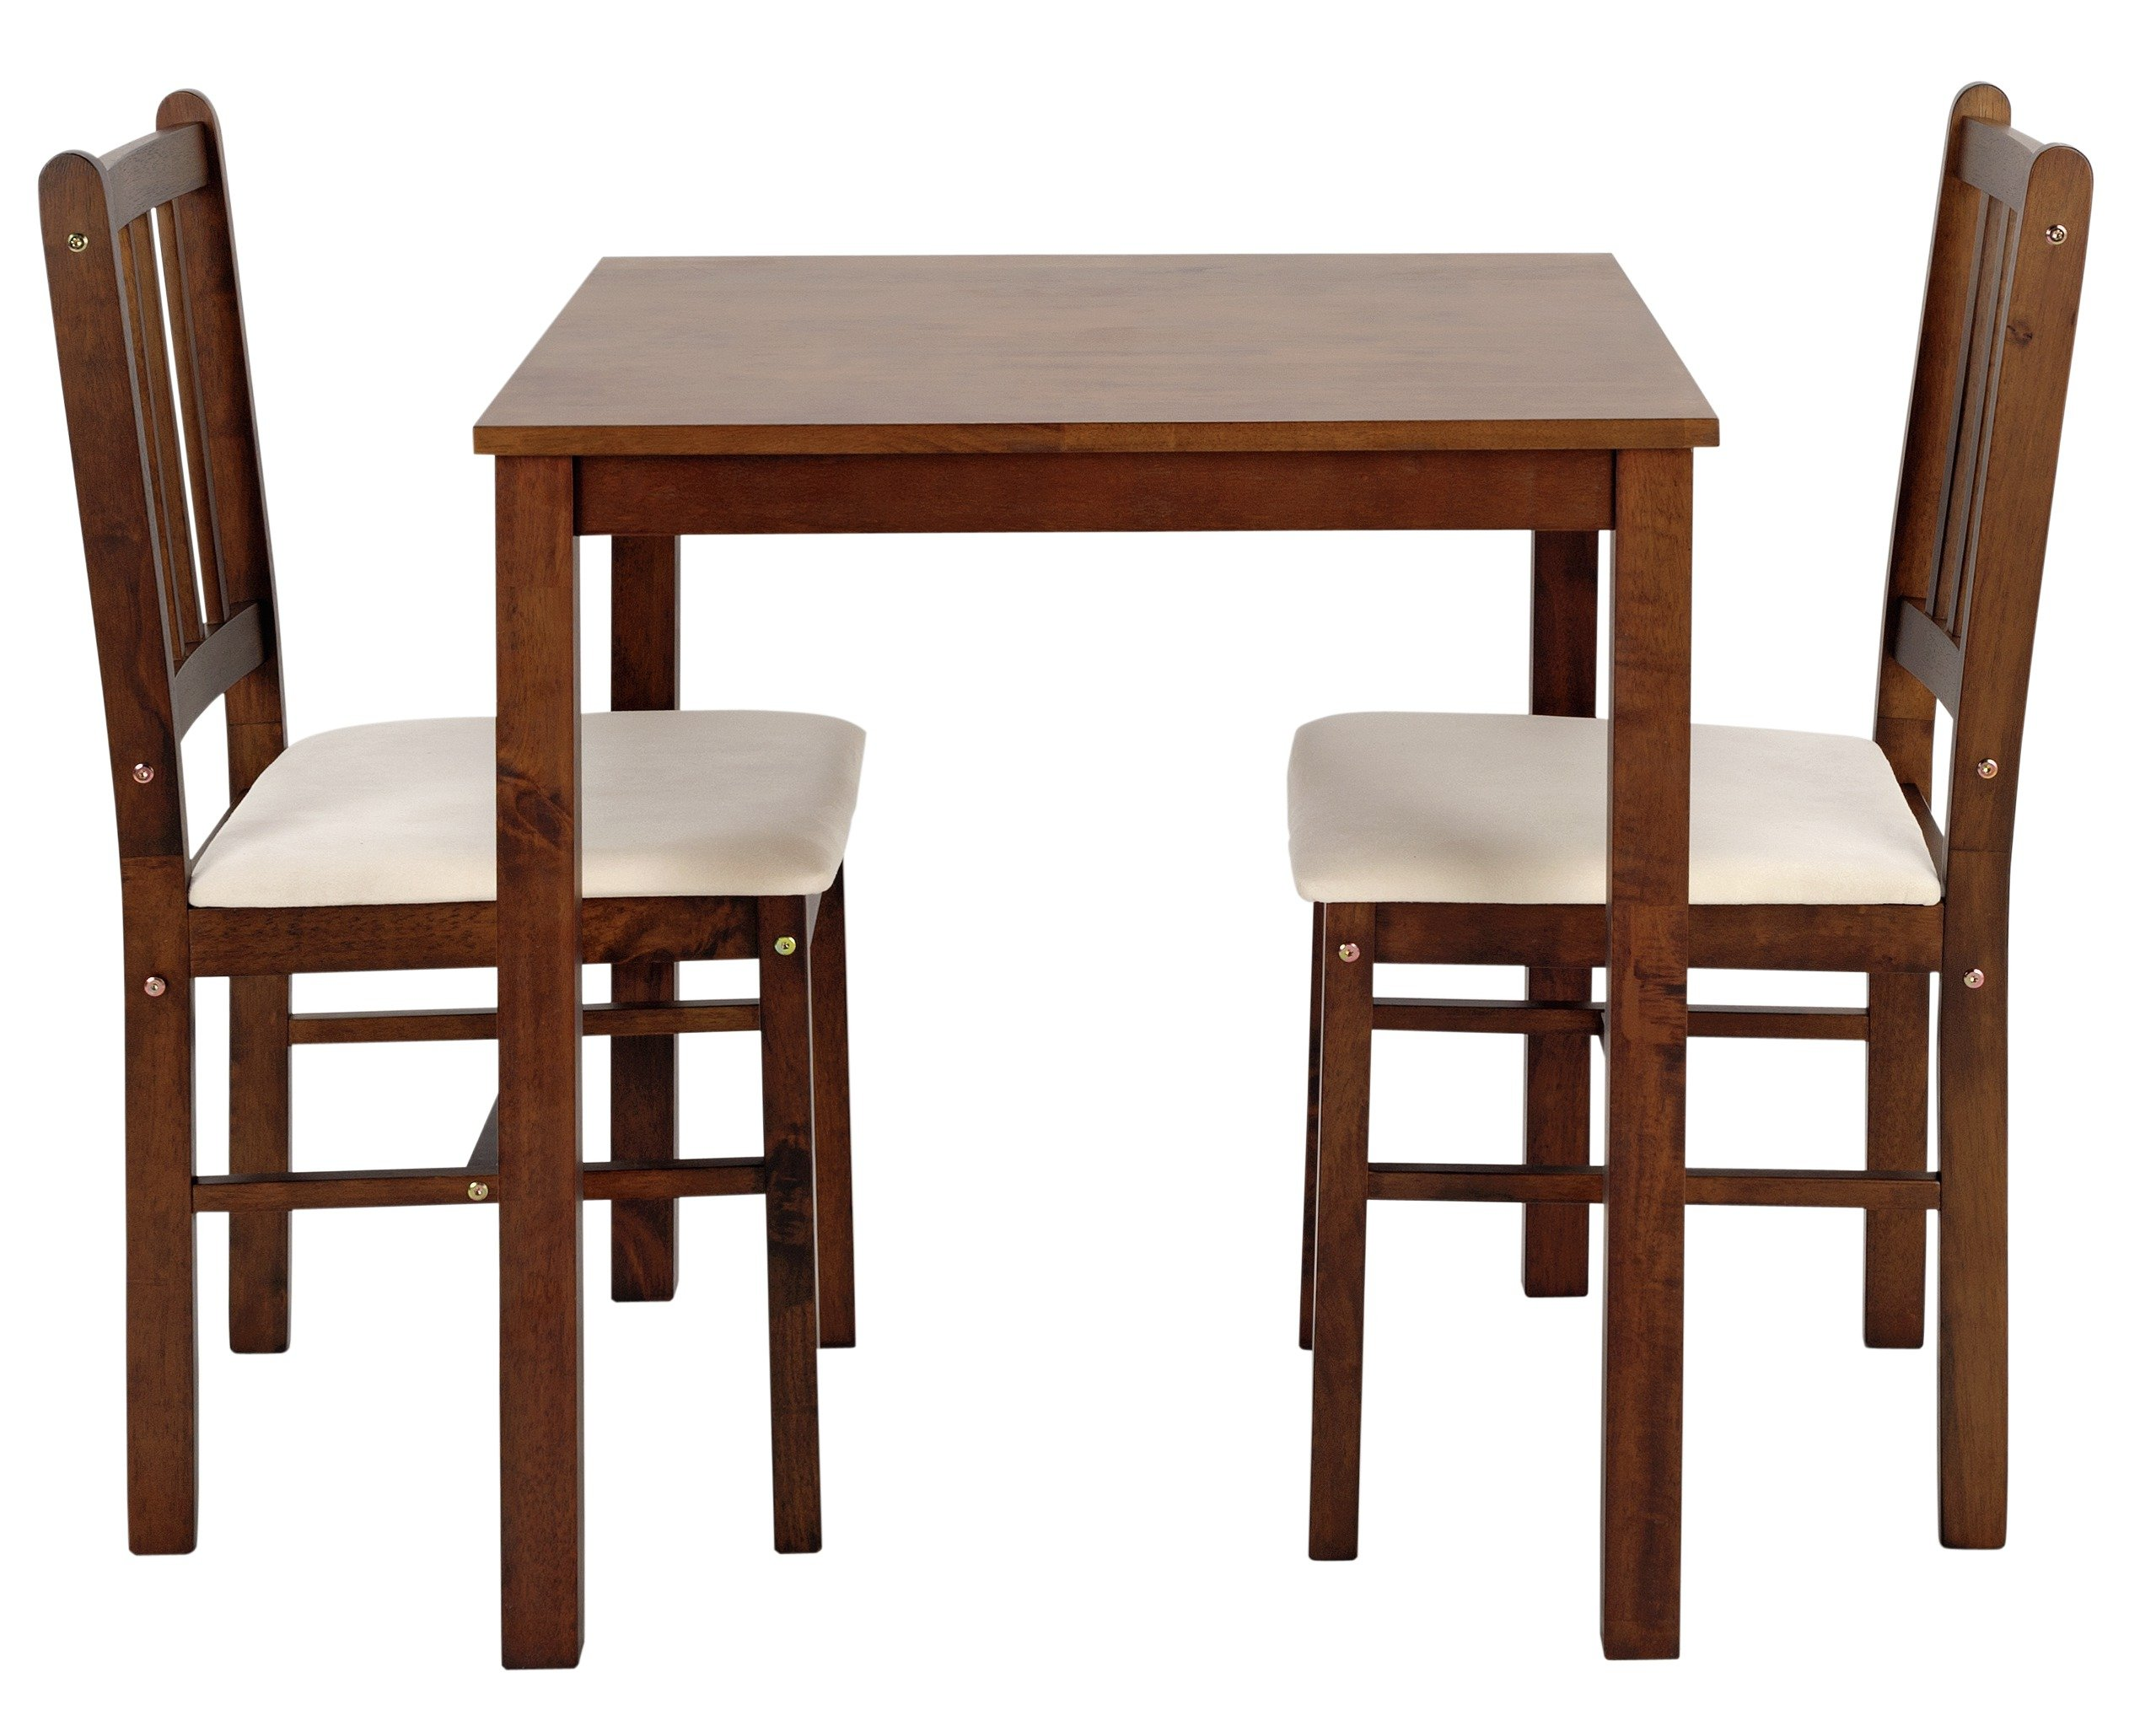 Buy HOME Kendall Solid Walnut Dining Table amp 2 Chairs  : 6006273RZ001AWebampw570amph513 from www.argos.co.uk size 570 x 513 jpeg 29kB